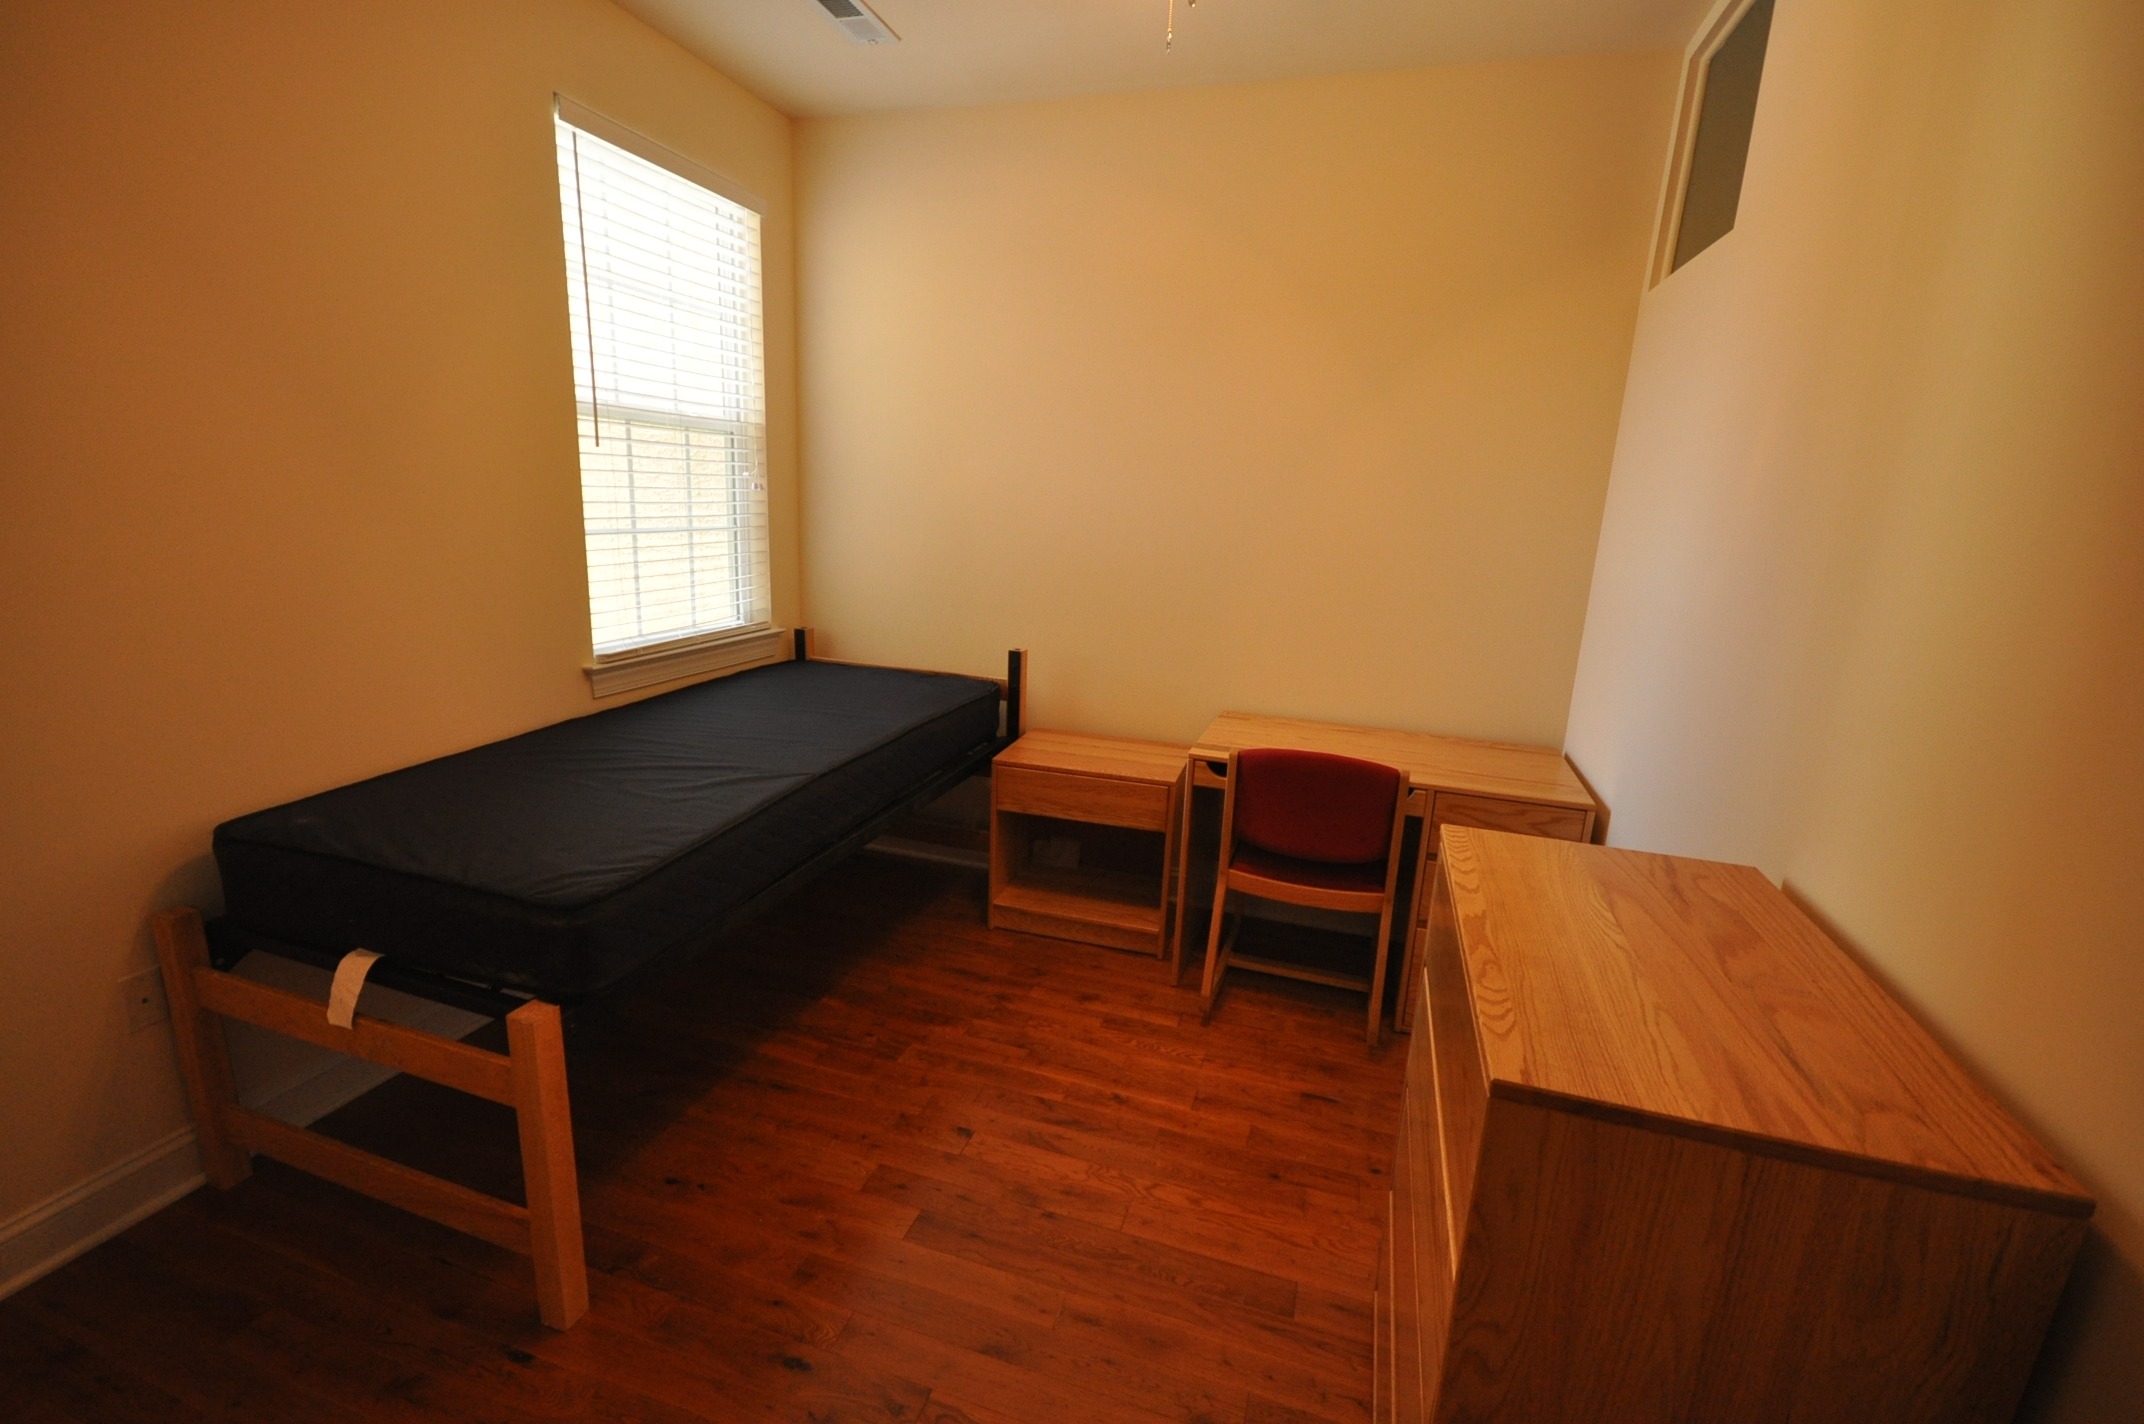 best Rooms For Rent In Dallas Tx Craigslist image collection